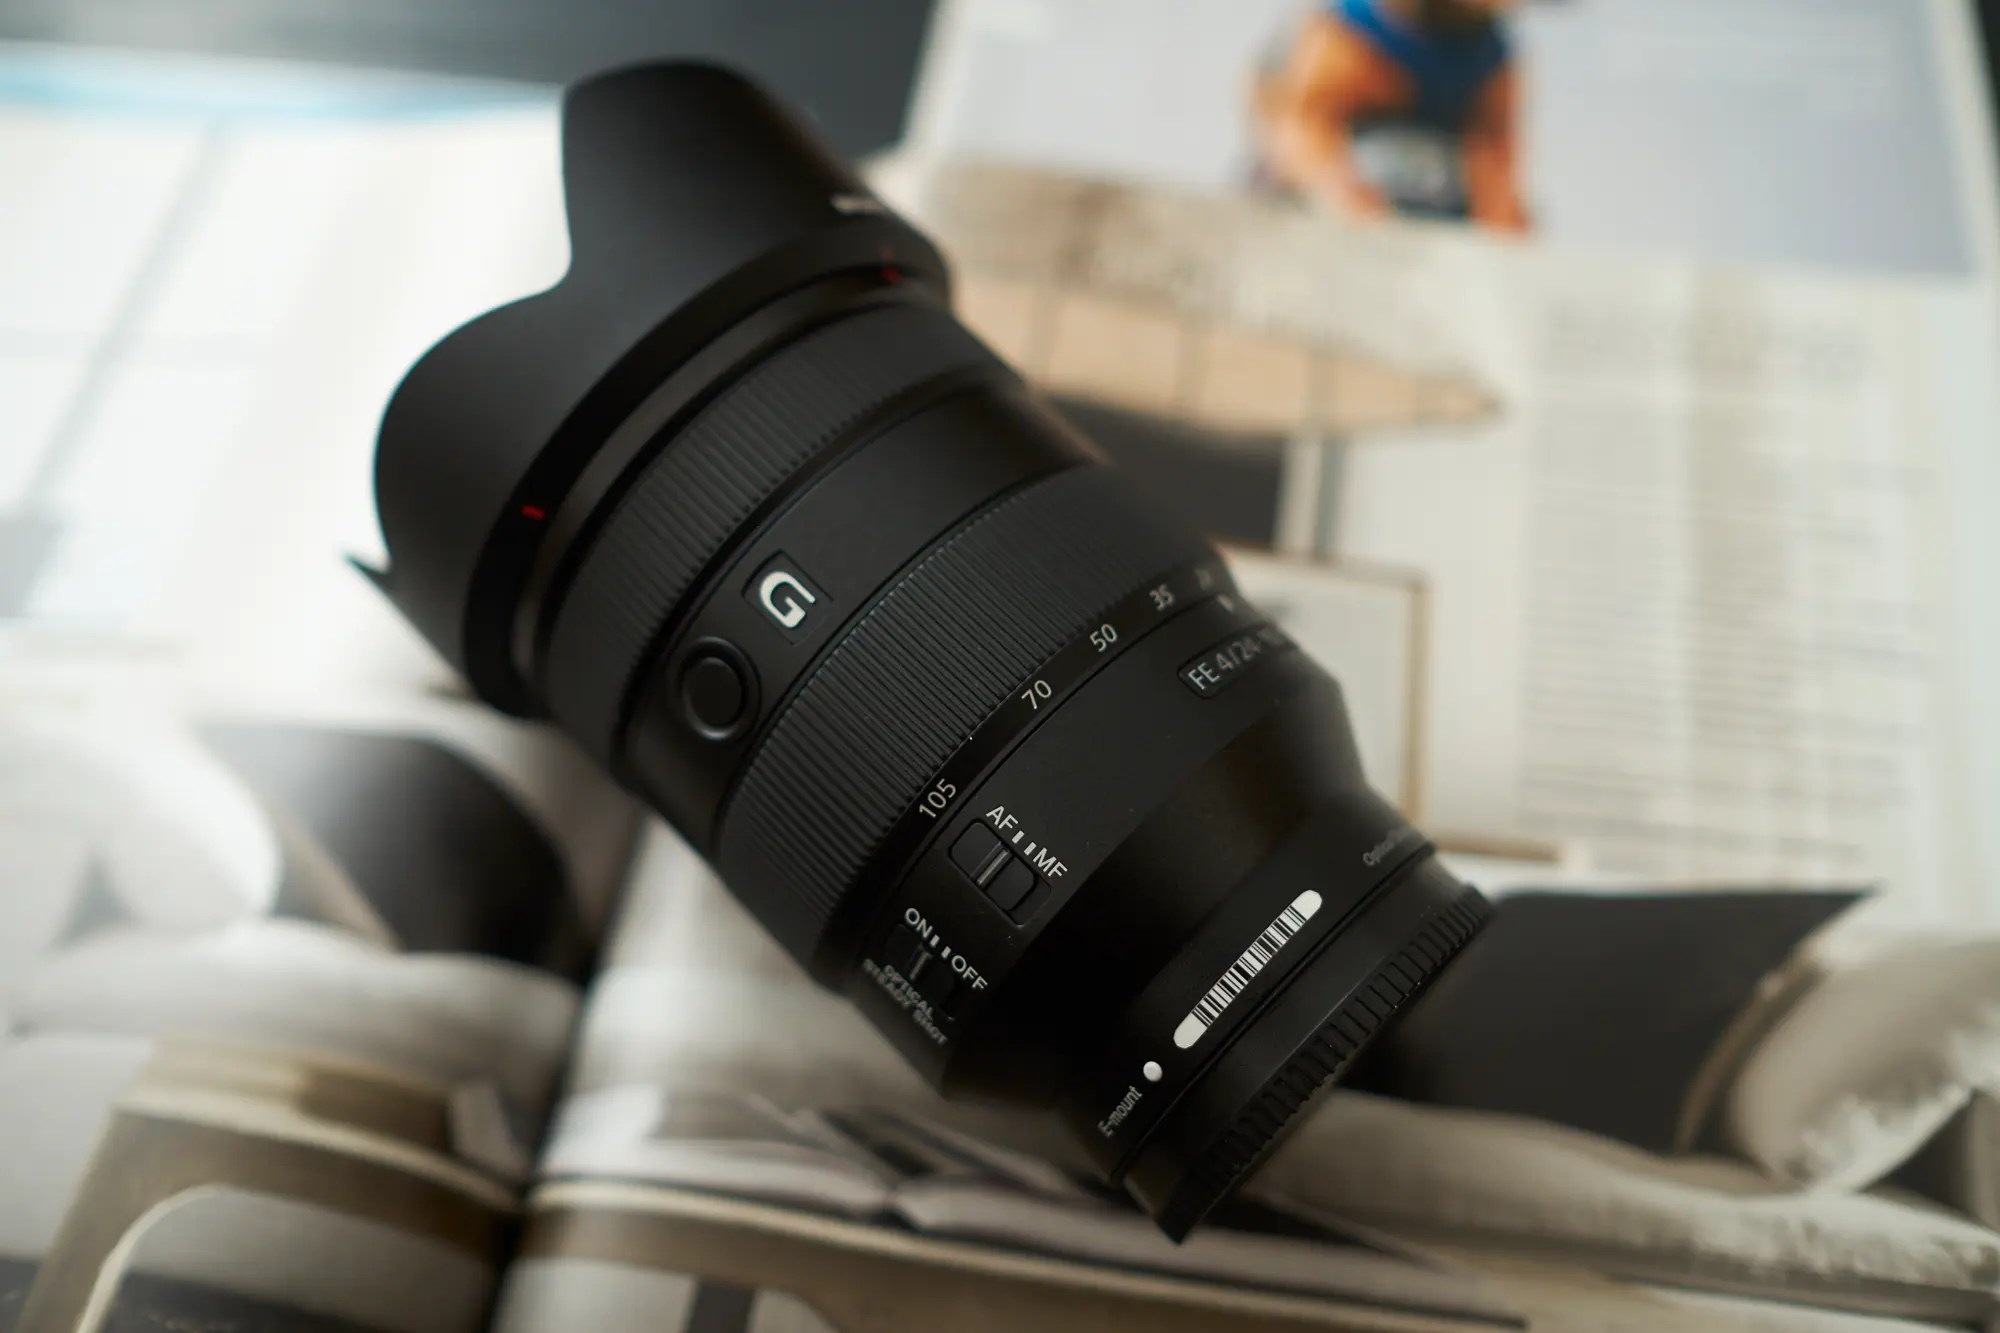 Jb Lighting A7 Zoom Manual Review Sony 24 105mm F4 G Oss Sony E Full Frame